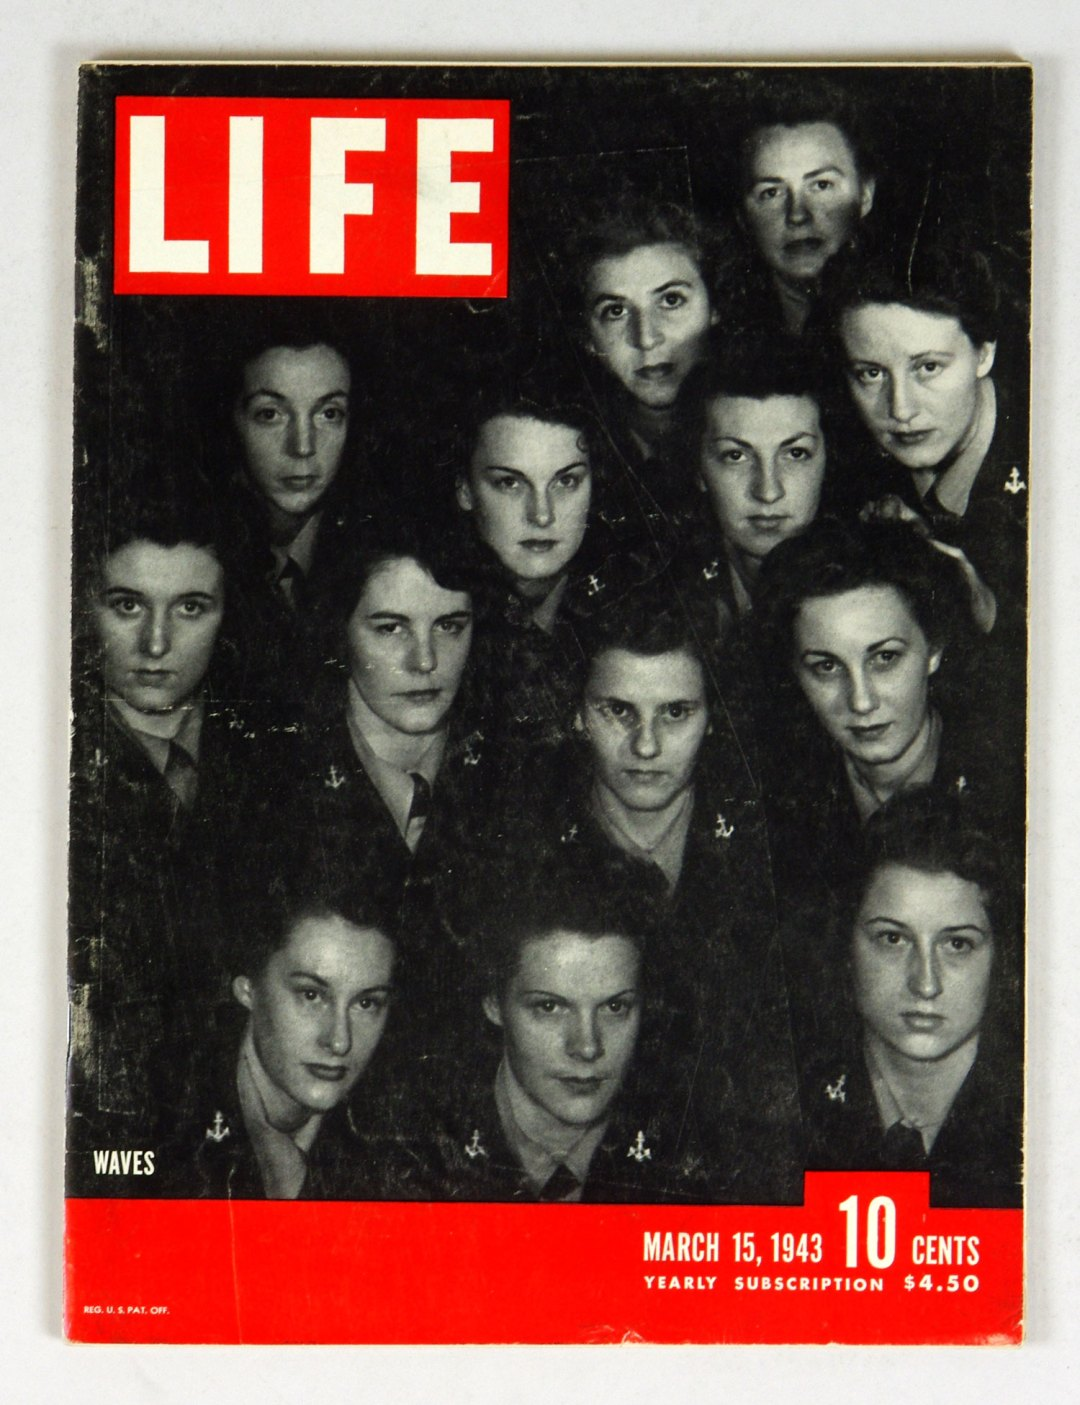 LIFE Magazine 1943 March 15 Waves